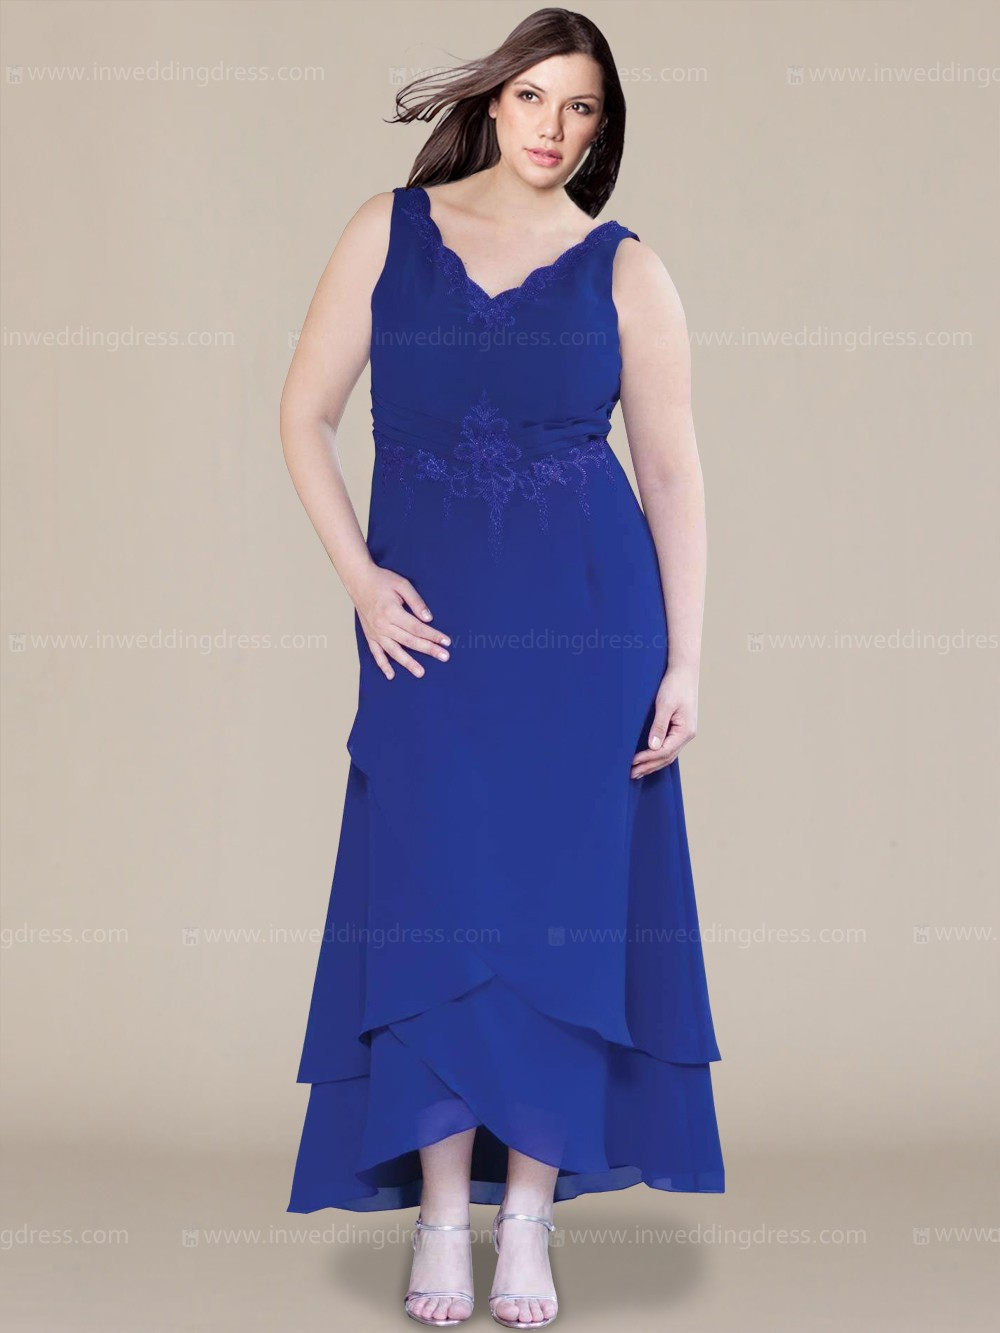 Plus size mother of the bride dress chiffon plus size mother of the bride dress mo218. chiffon mother of the  bride YXQJLQY